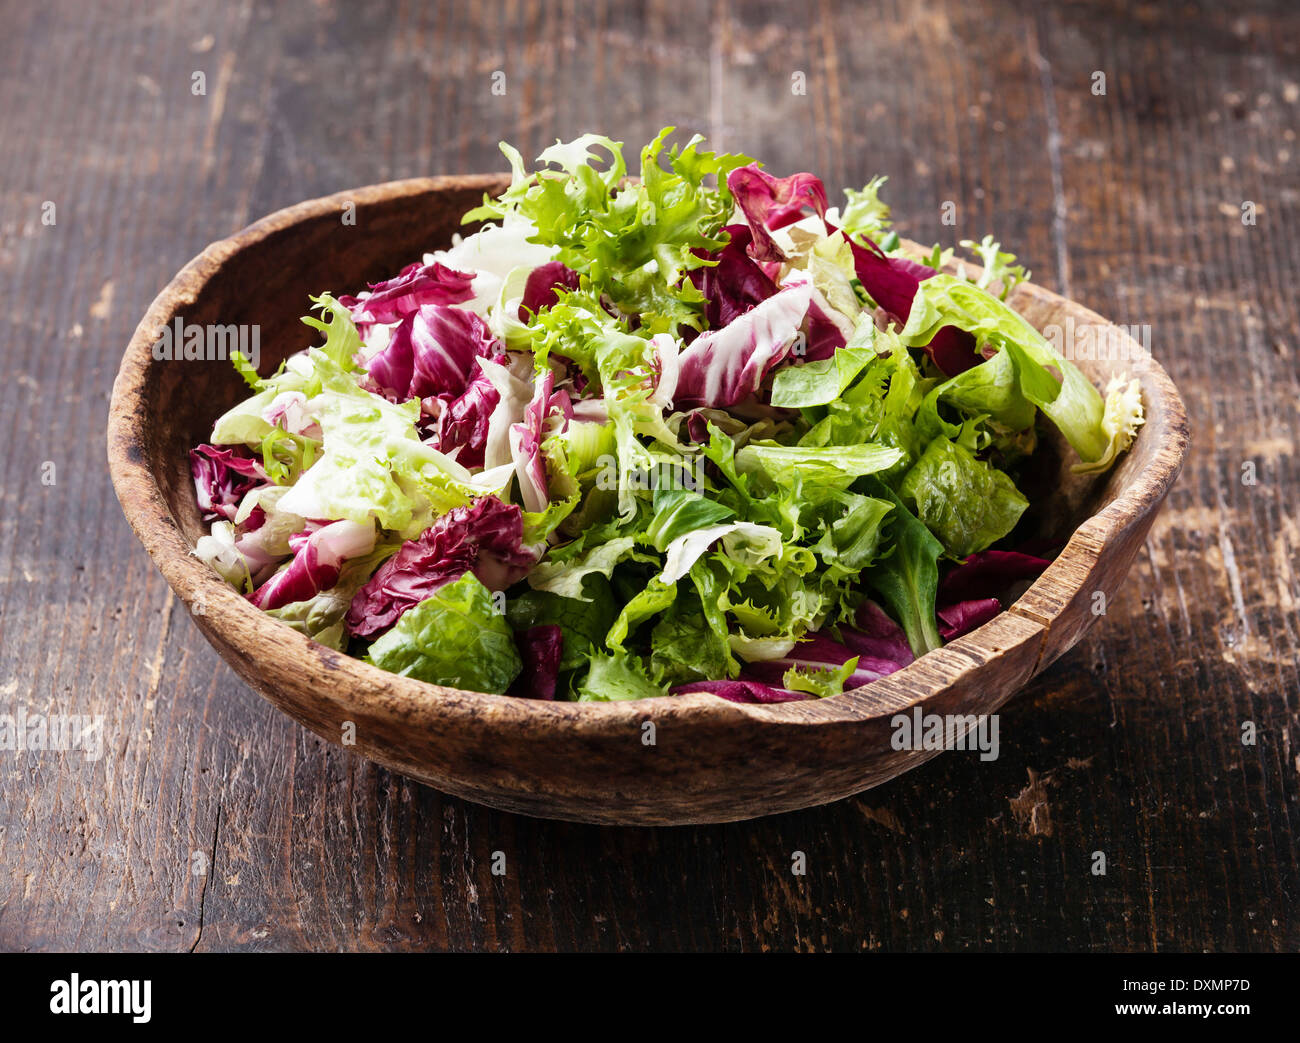 Fresh salad leaves mix in wooden bowl - Stock Image